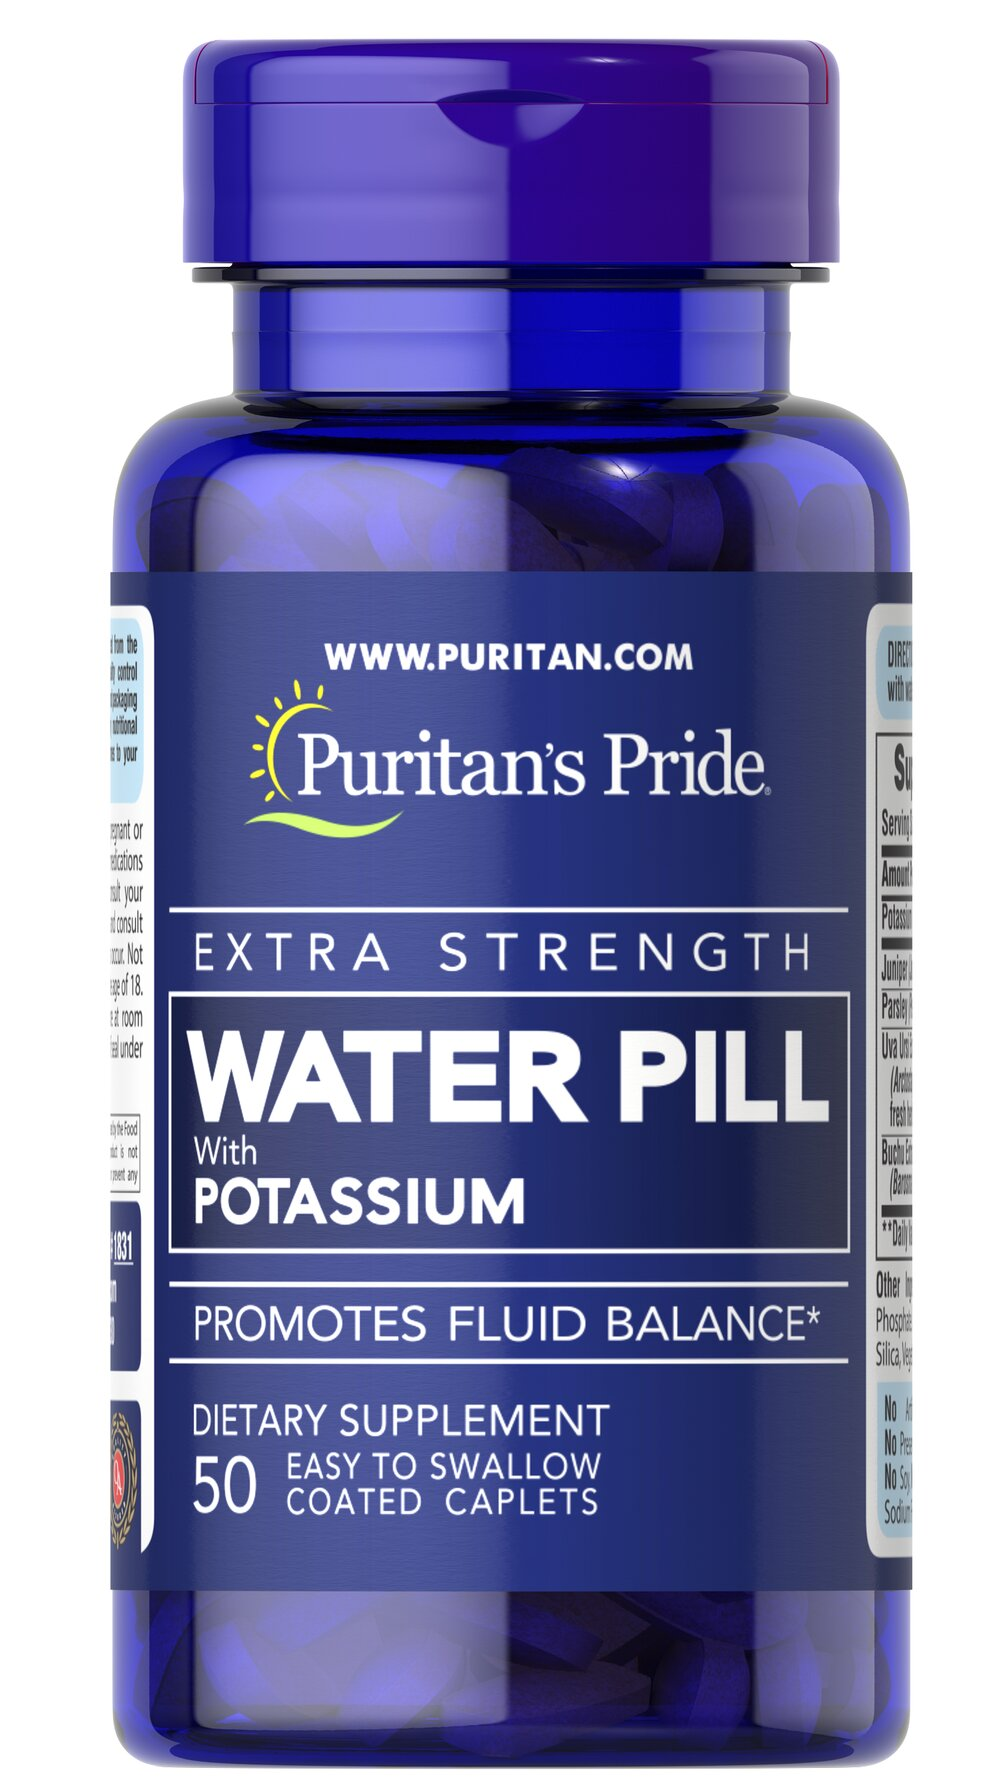 Extra Strength Water Pill™ <p>Promotes Fluid Balance**</p><p>This product contains the essential mineral Potassium, which works with sodium to regulate the body's water balance.** EXTRA STRENGTH WATER PILL™ Tablets also contain Uva Ursi, Buchu, Juniper and Parsley.</p> 50 Tablets  $5.99